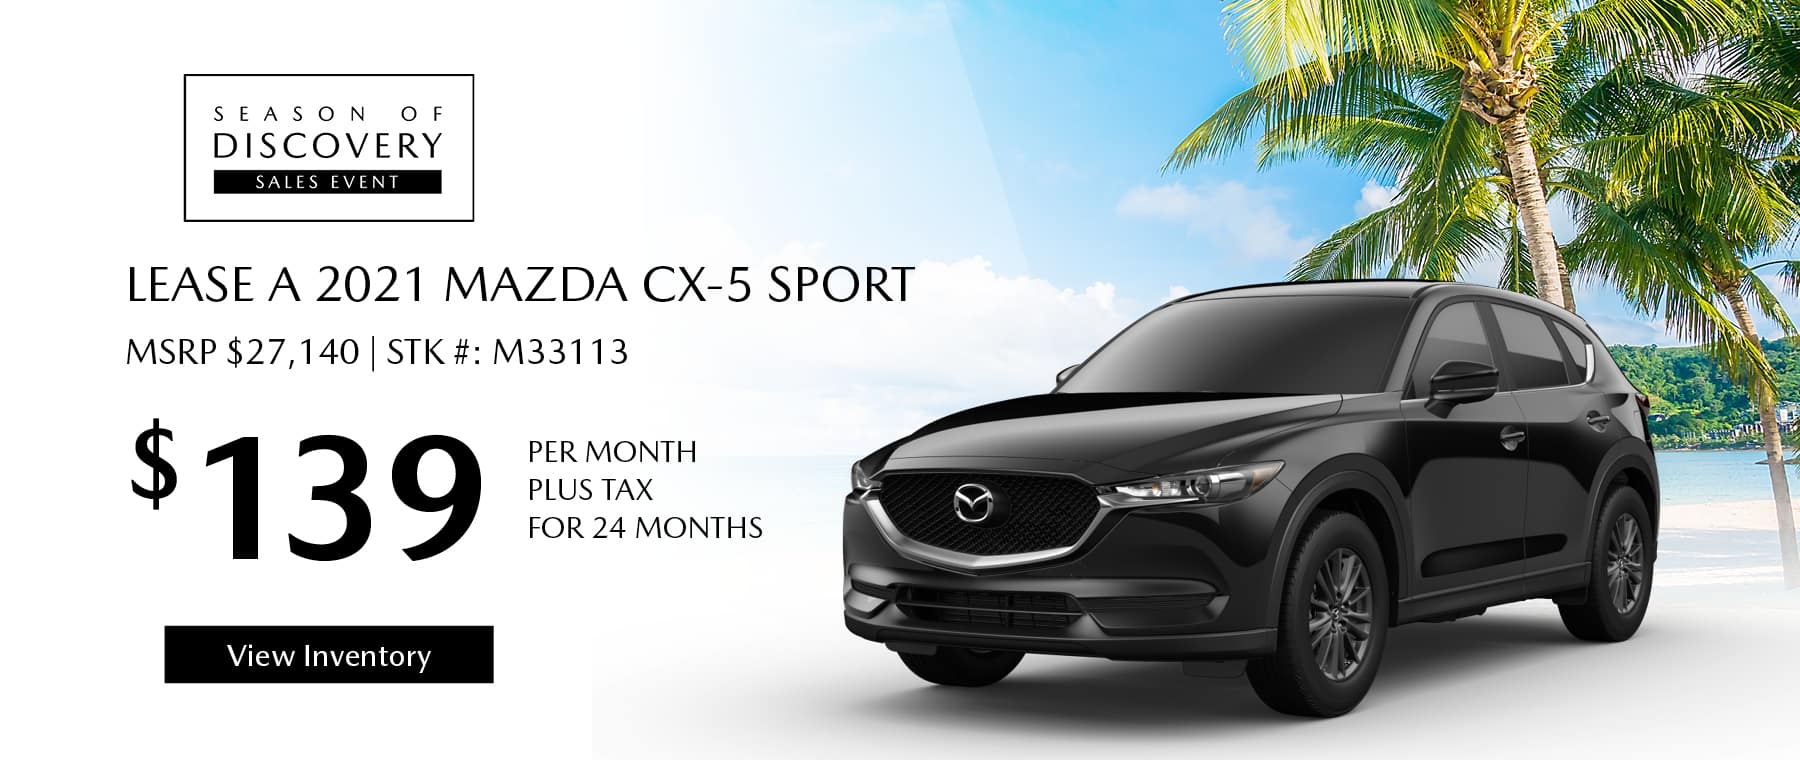 Lease the 2021 Mazda CX-5 for $139 per month, plus tax for 24 months. Click or tap here to view our inventory.